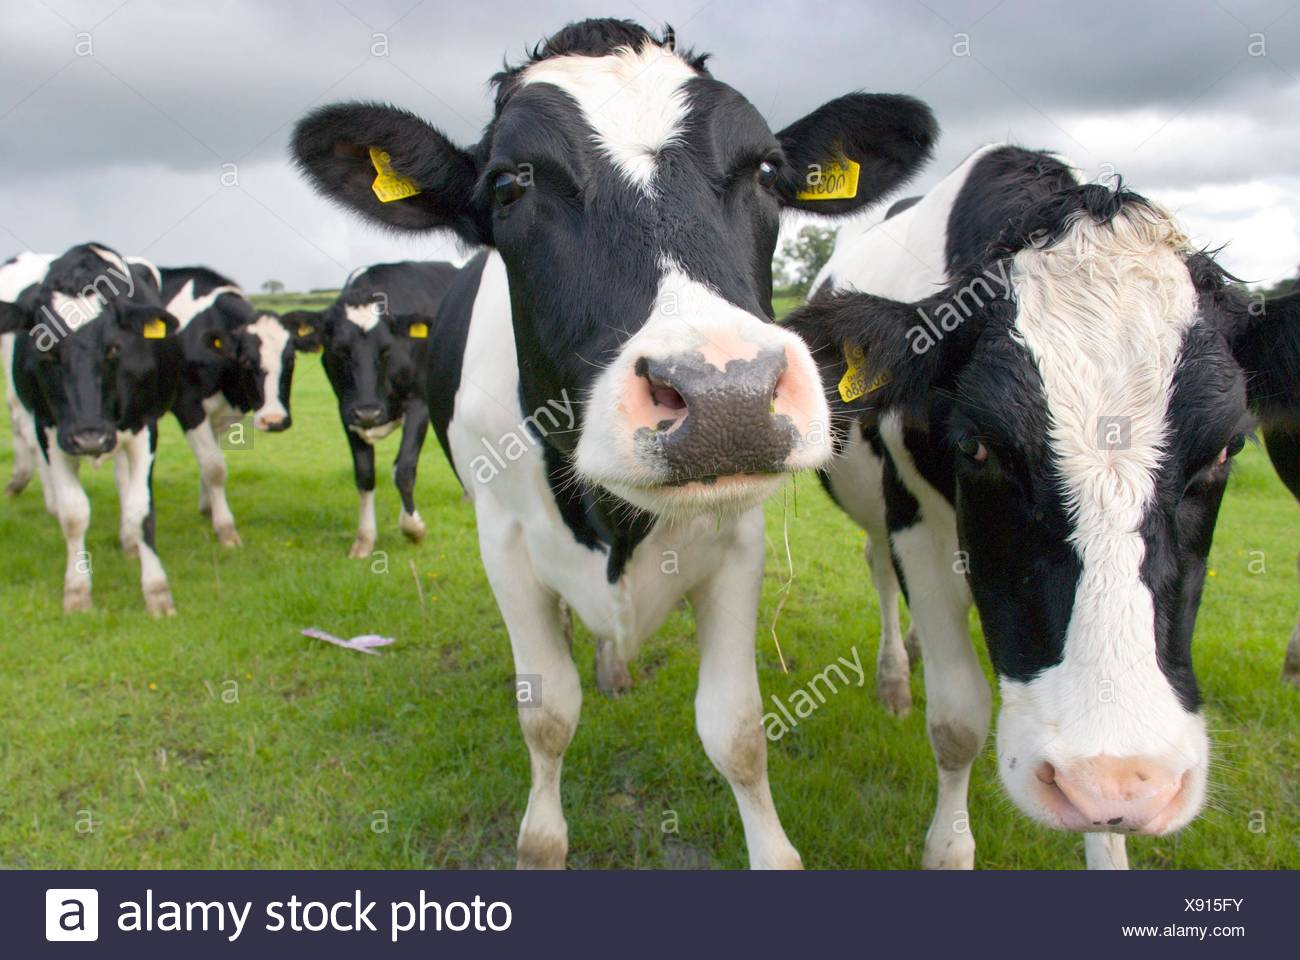 black and white cows on the pasture stock photo 280924111 alamy